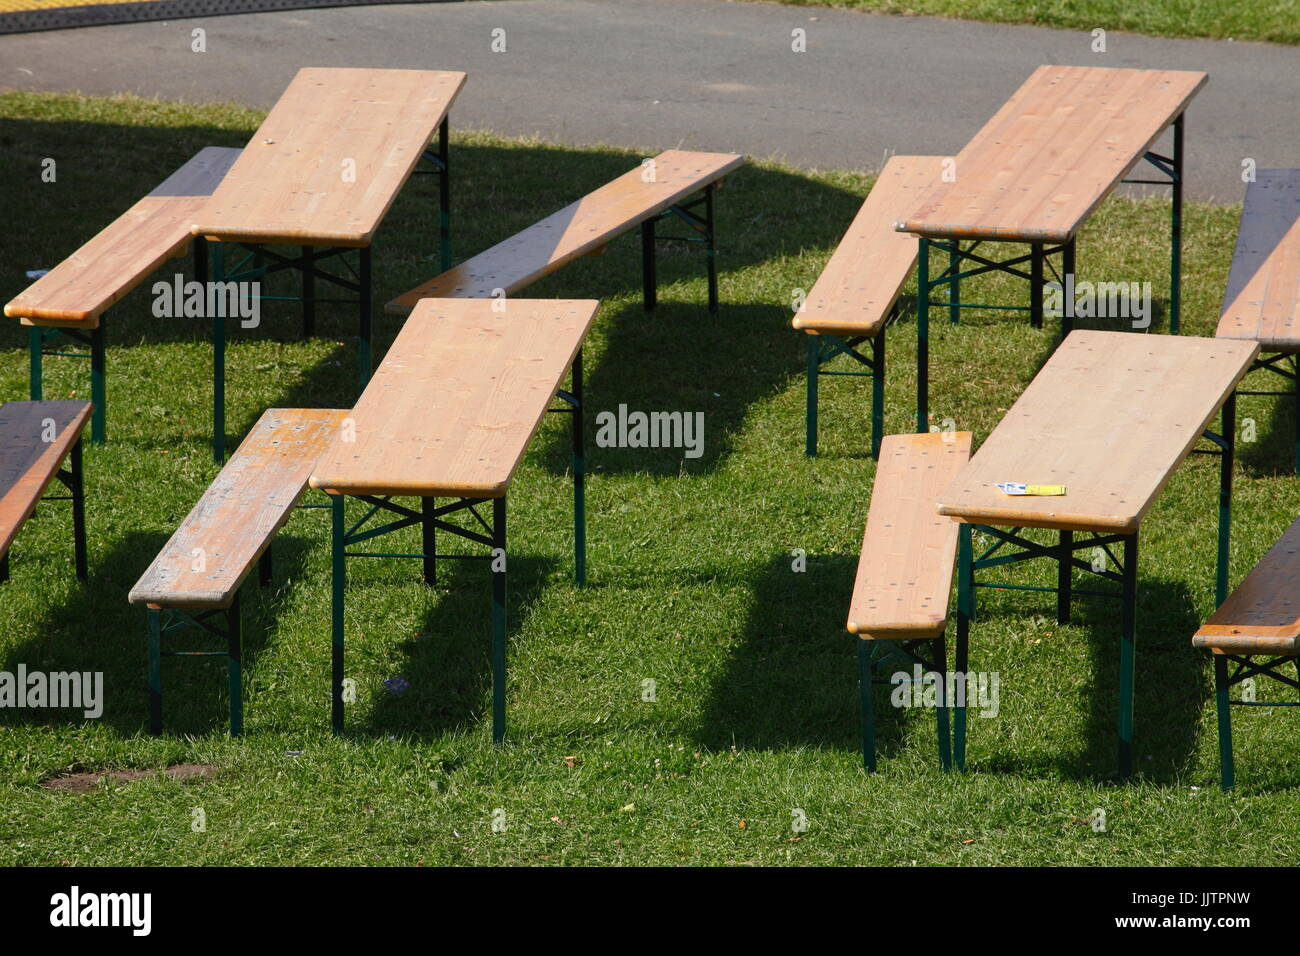 wooden folding tables and benches Stock Photo: 149291461 - Alamy